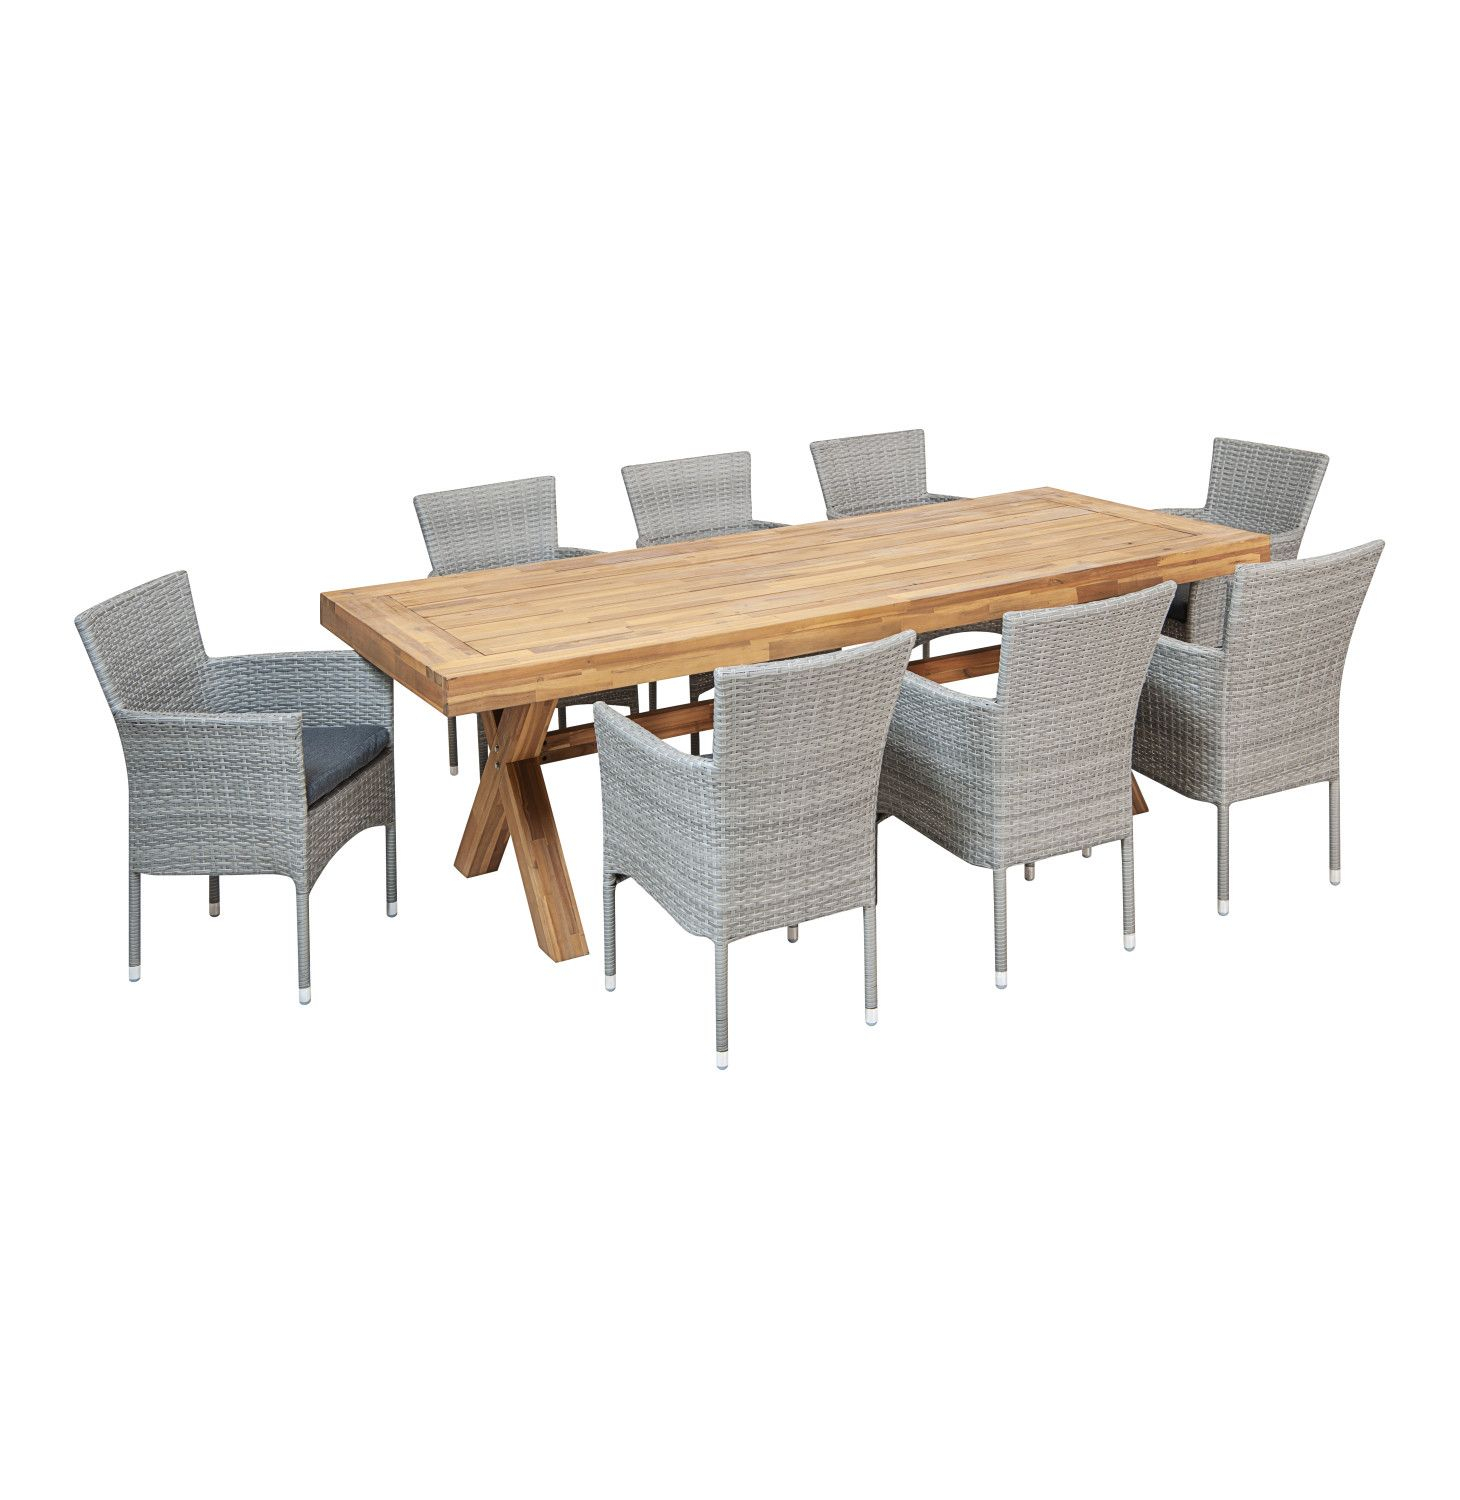 Terrace Leisure Sahara Dining Set Outdoor Furniture Sets with regard to dimensions 1460 X 1500